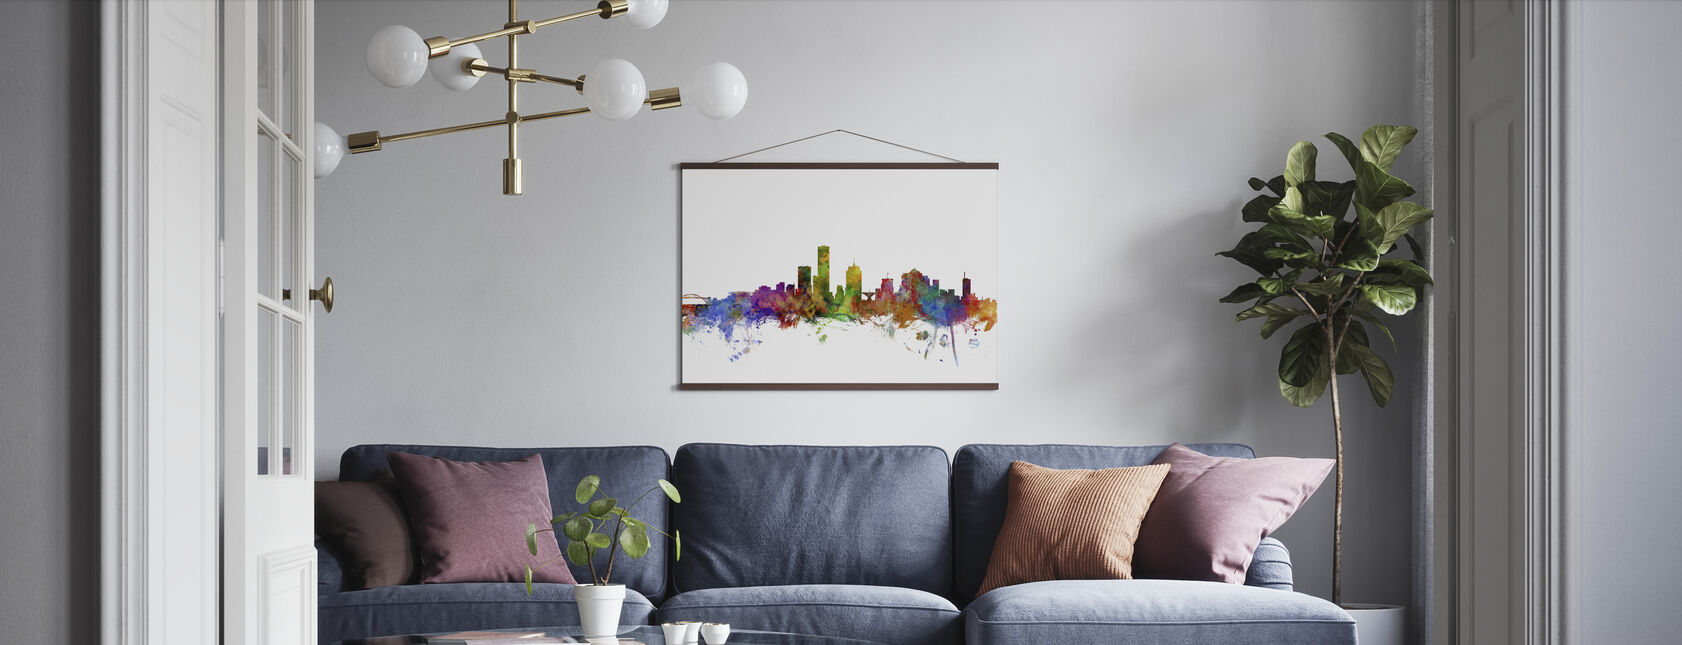 Milwaukee Wisconsin Skyline - Poster - Living Room